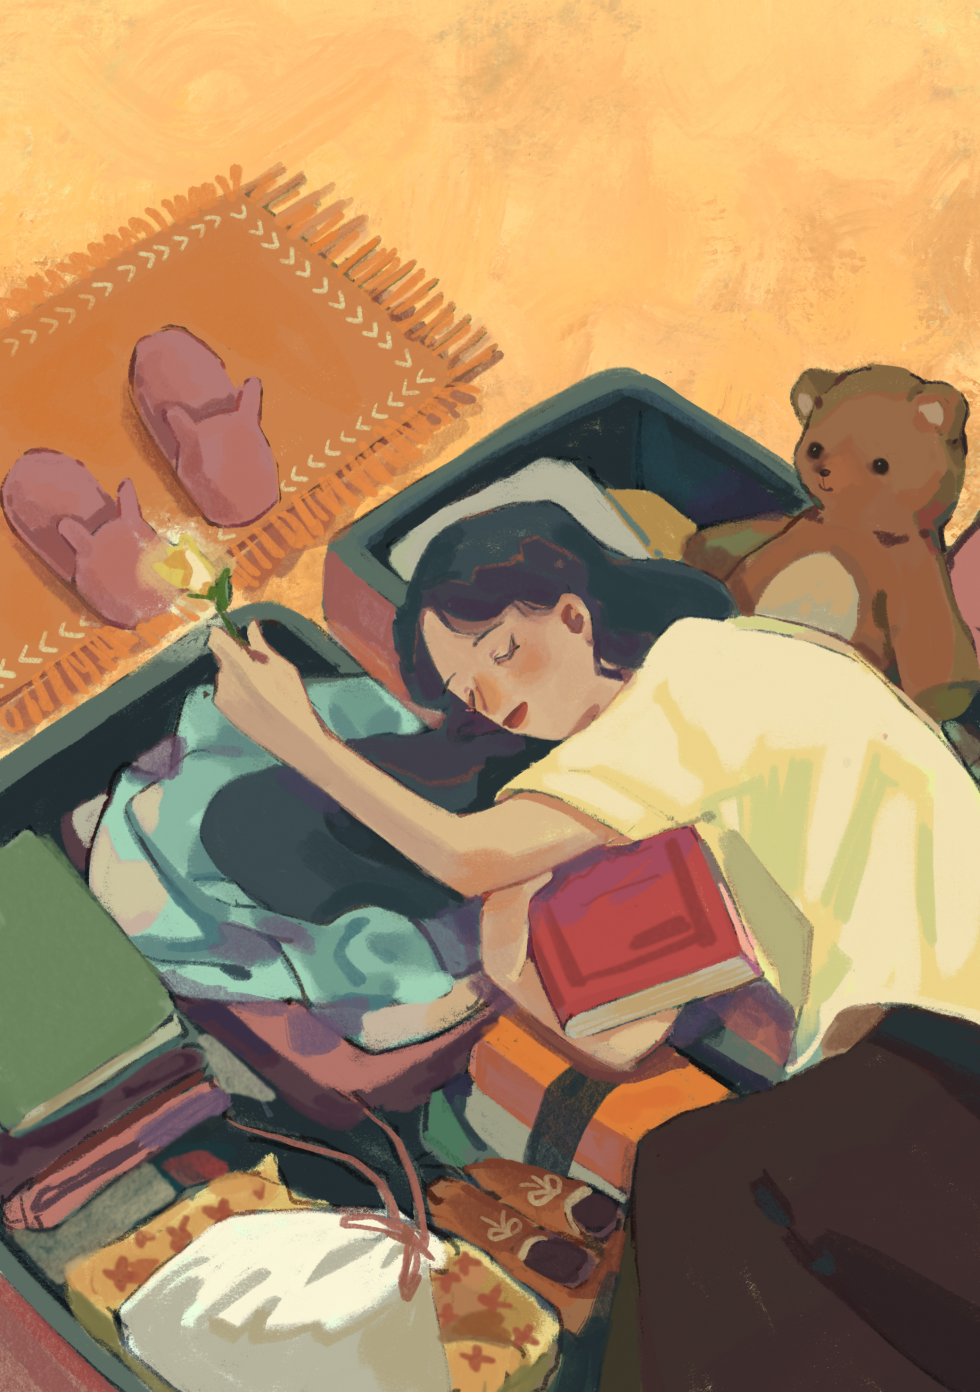 Digital Illustration about a girl laying on a open suitcase having a homesick moment.